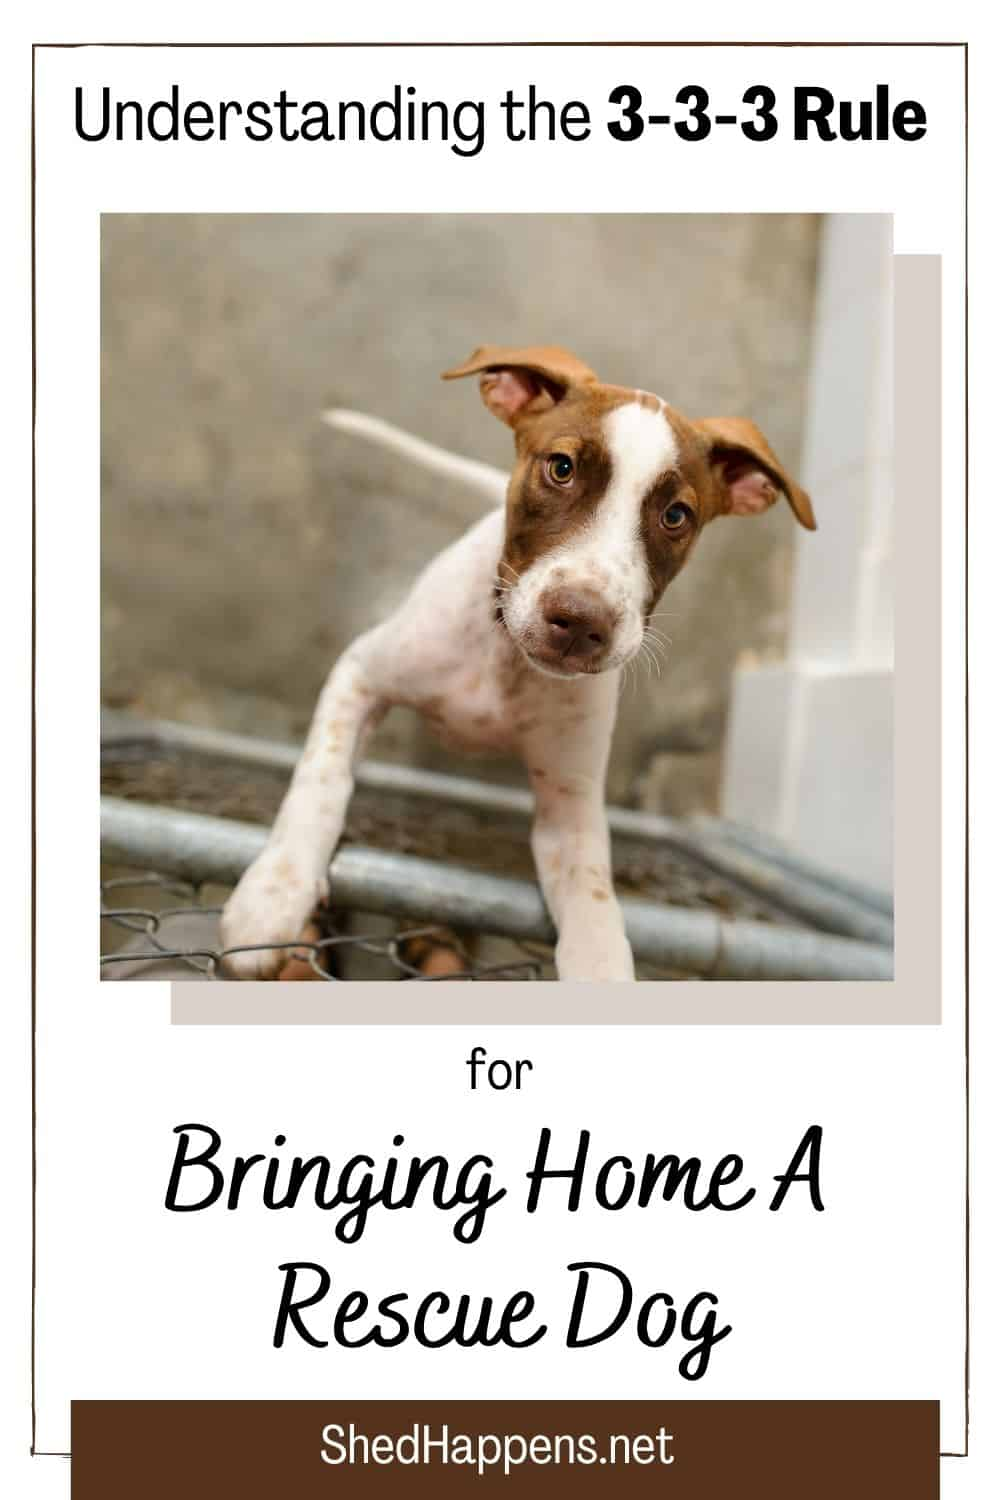 A small white short-haired dog with brown around its eyes and ears is standing in a kennel with its front feet up on the cage wall. Text reads understand the 3-3-3 rule for bringing home a rescue dog.